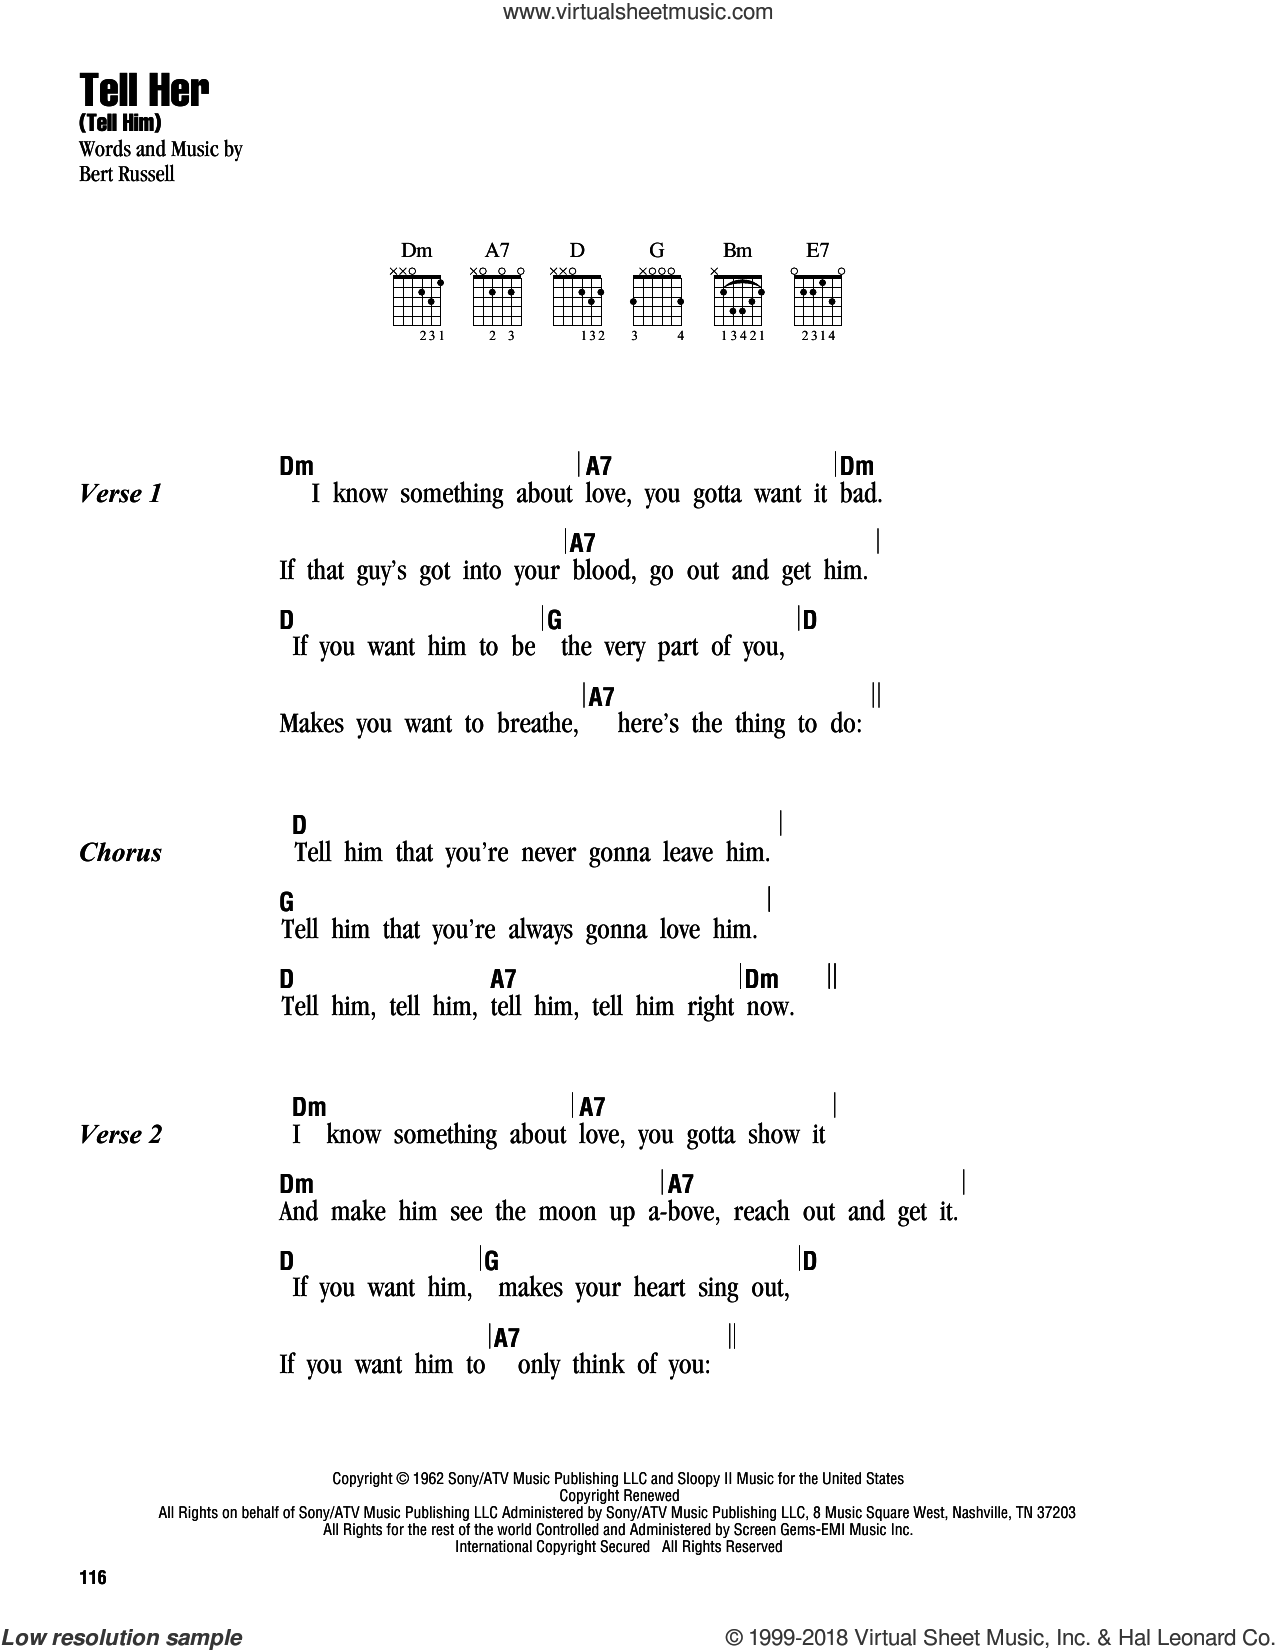 Tell Her (Tell Him) sheet music for guitar (chords) by Bert Russell. Score Image Preview.